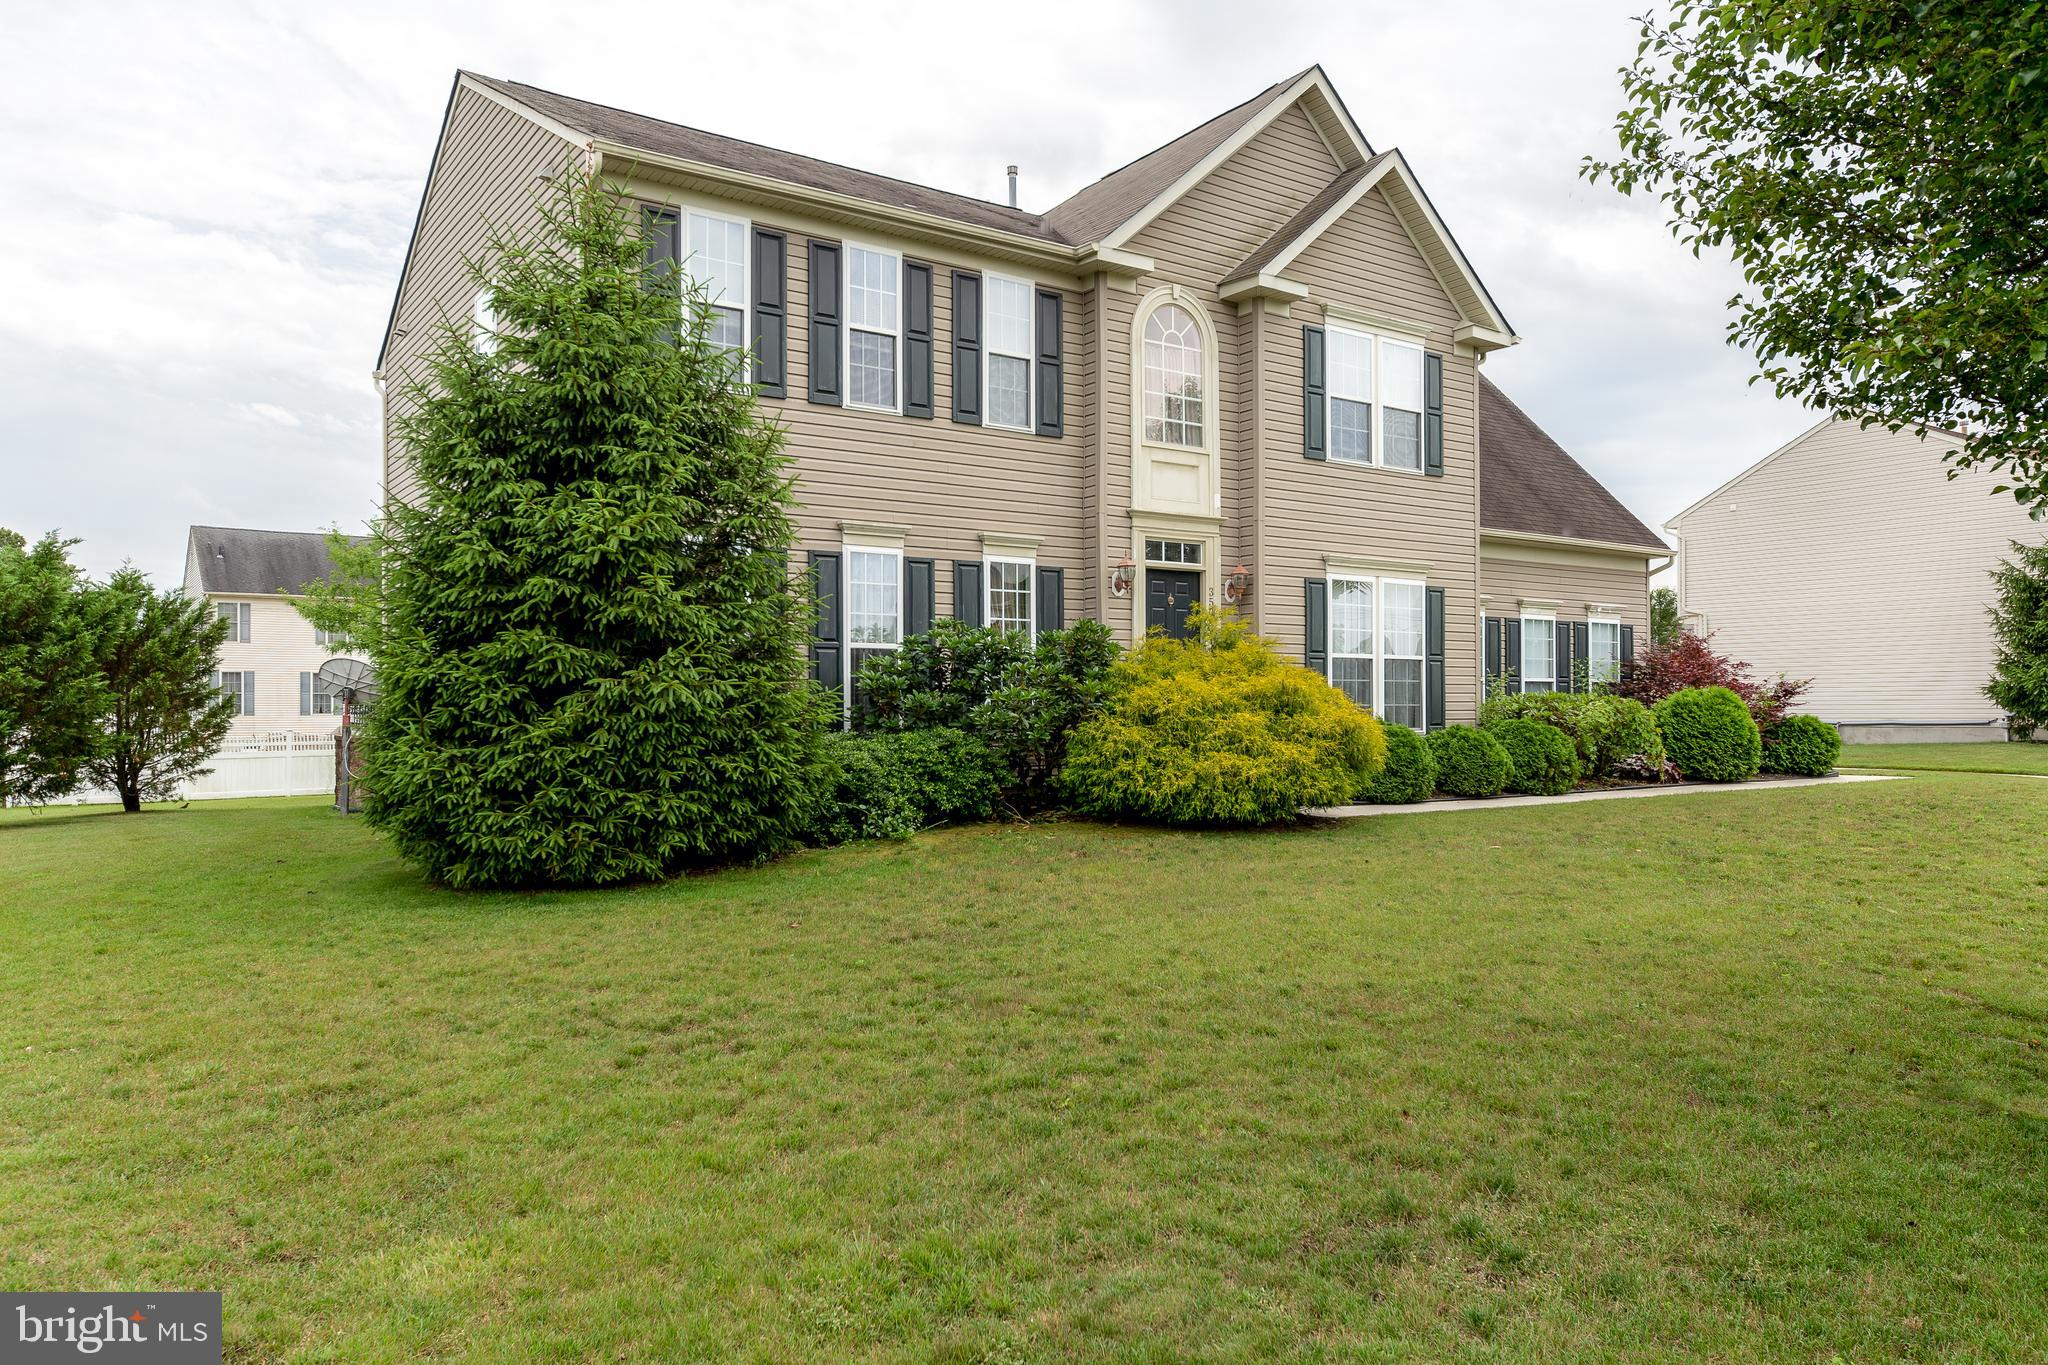 3509 RAVENNA LANE, VINELAND, NJ 08361